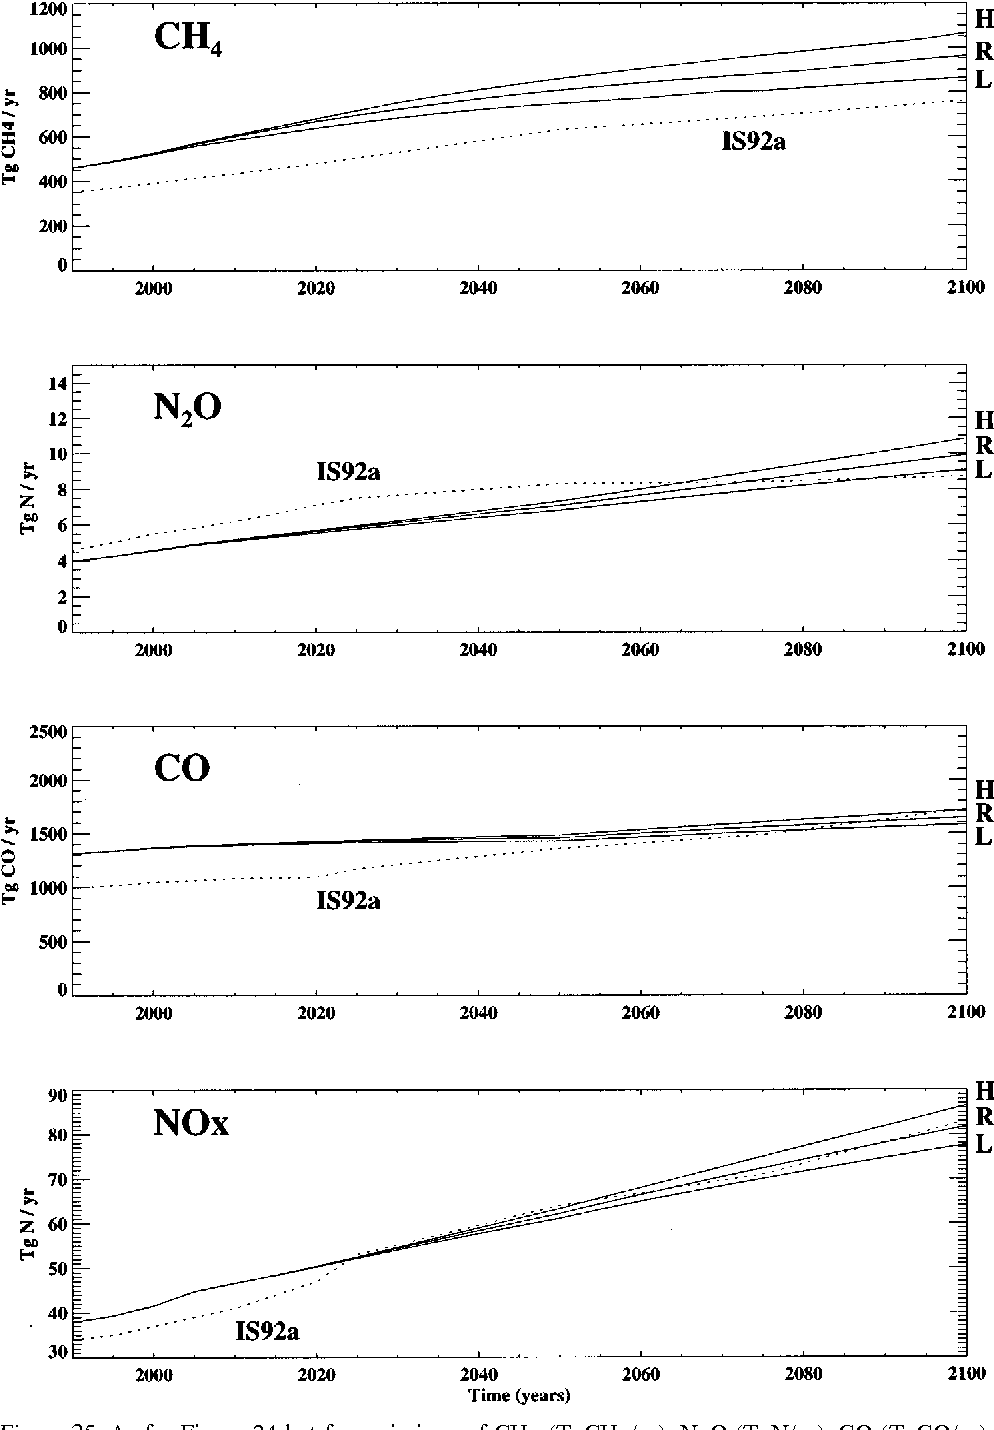 Figure 25. As for Figure 24 but for emissions of CH4 (TgCH4/yr), N2O (TgN/yr), CO (TgCO/yr), and NOx (TgN/yr). See Figure 23 for run nomenclature.